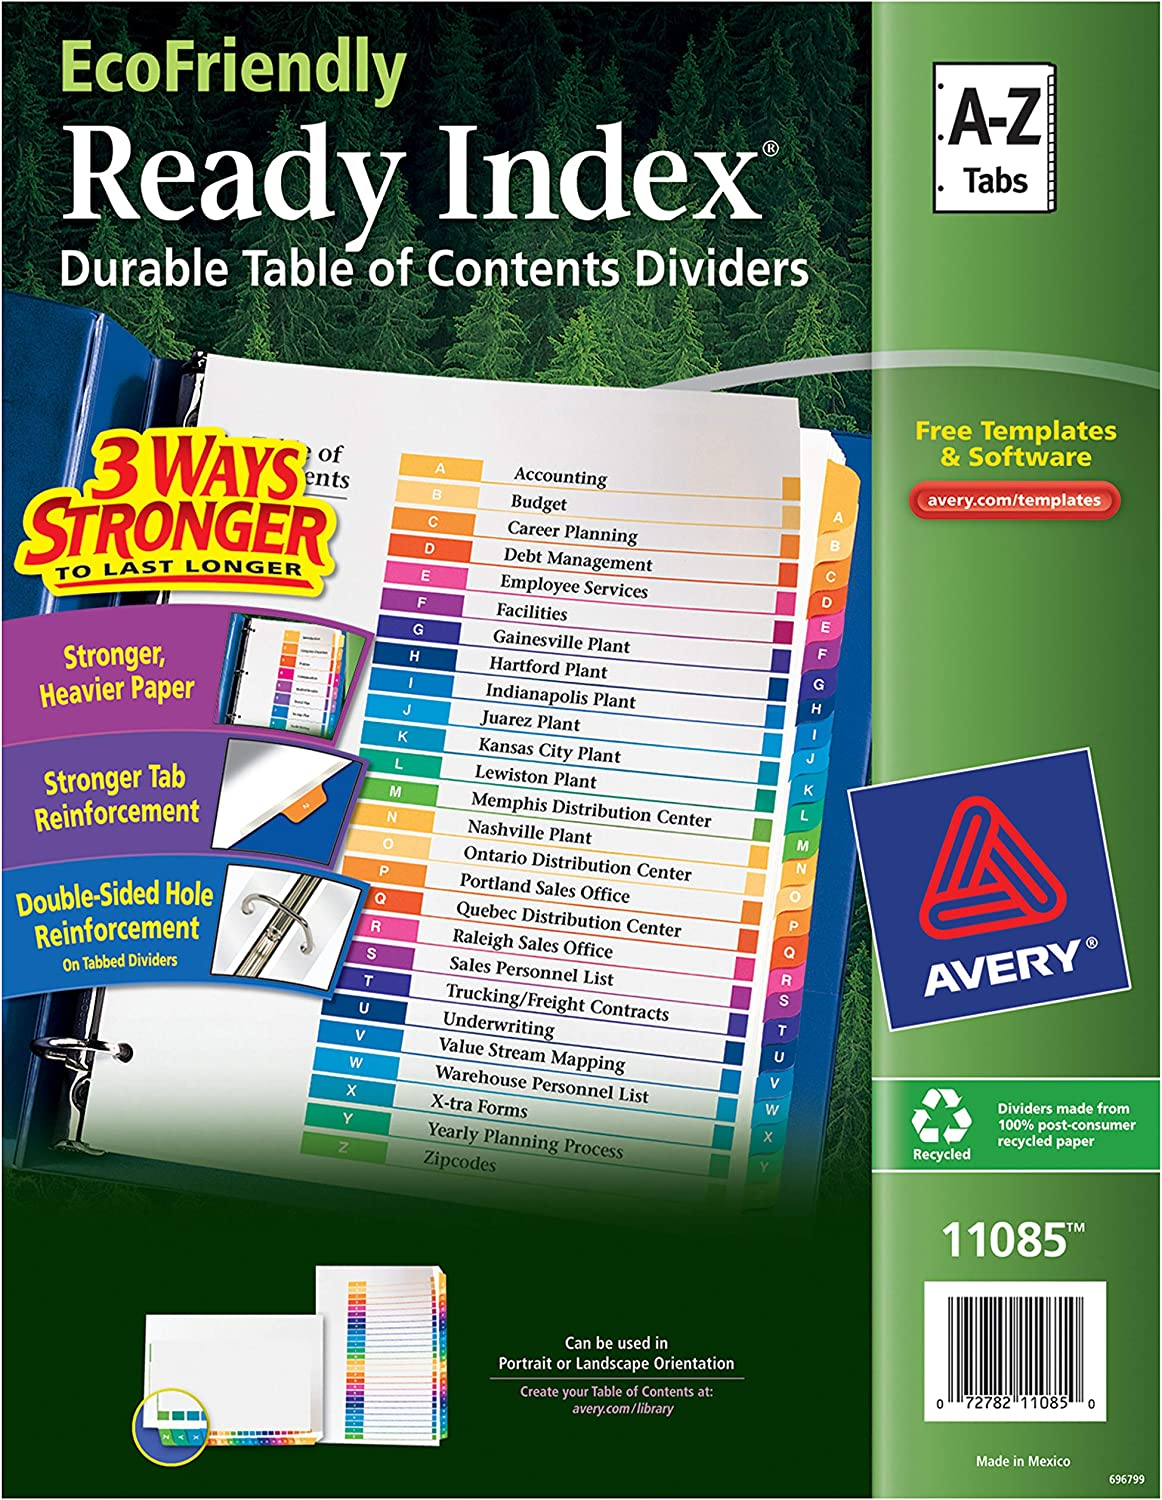 Avery Eco-Friendly 26 Tabs A-Z Dividers for 3 Ring Binders, Customizable Table of Contents, 1 Set (11085),Multicolor